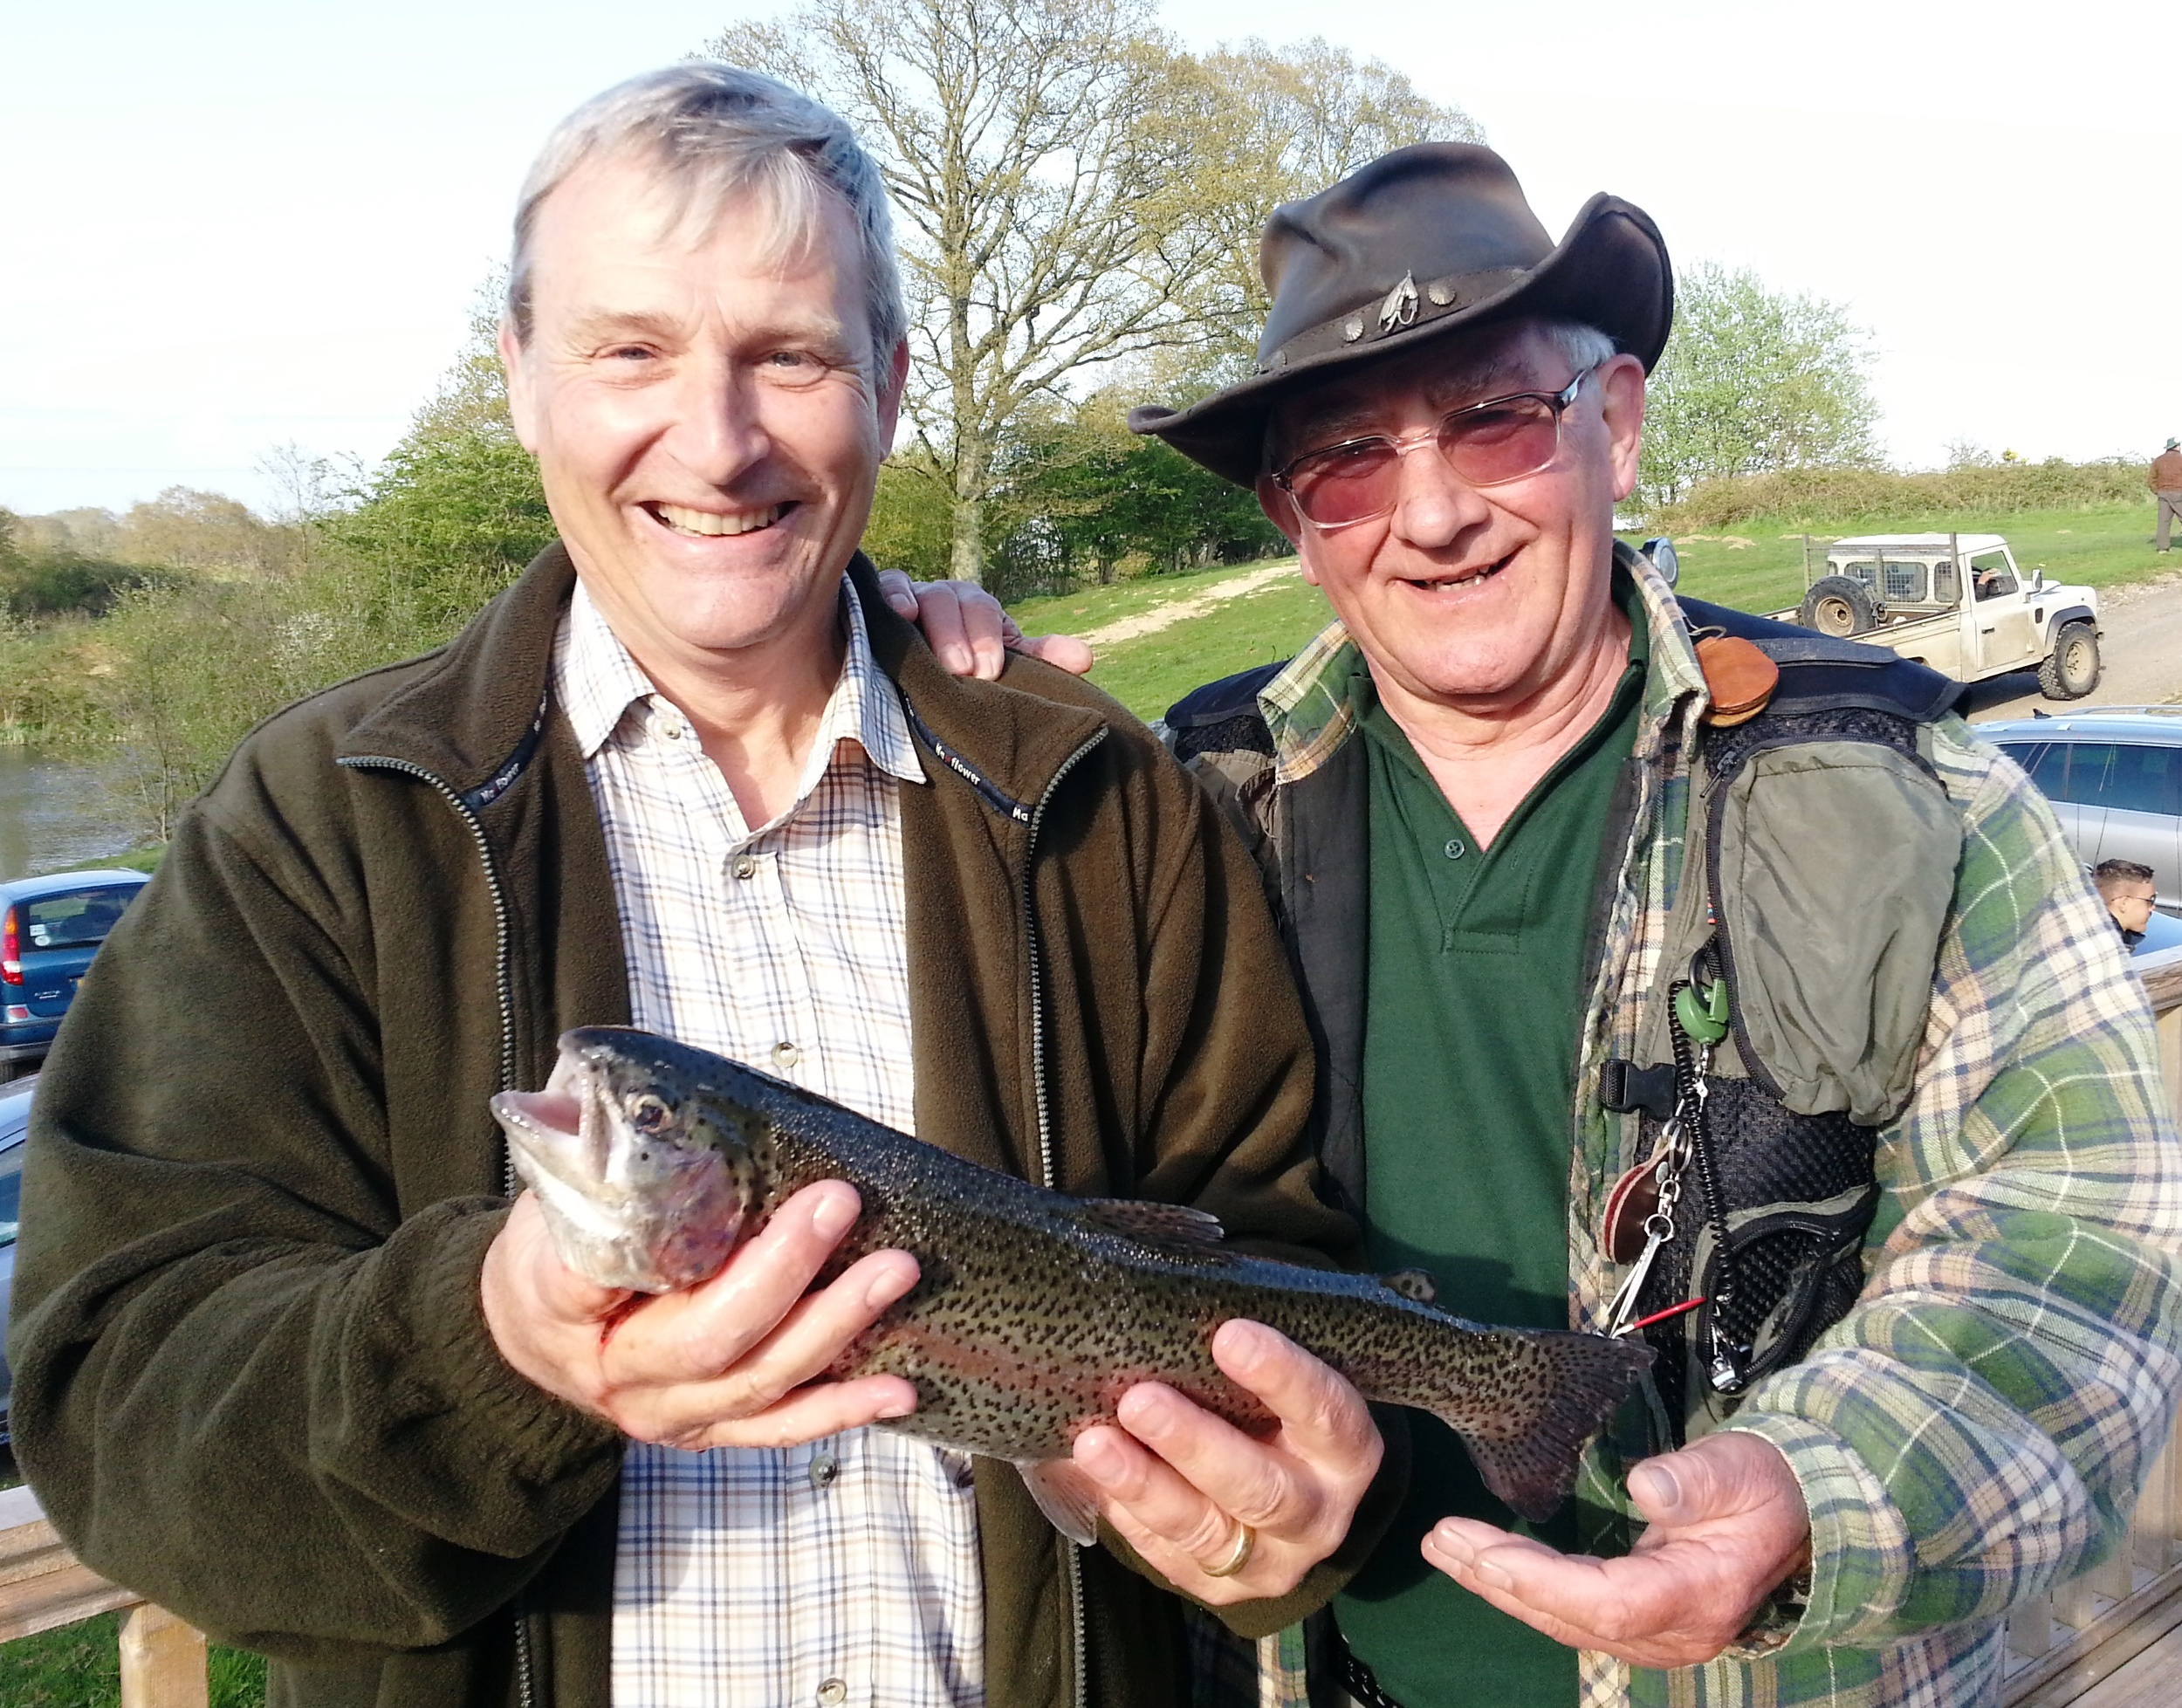 Paul Gietzen with his first ever fish helped by the experienced Fred Mitchell at Brick Farm's fly fishing taster evening